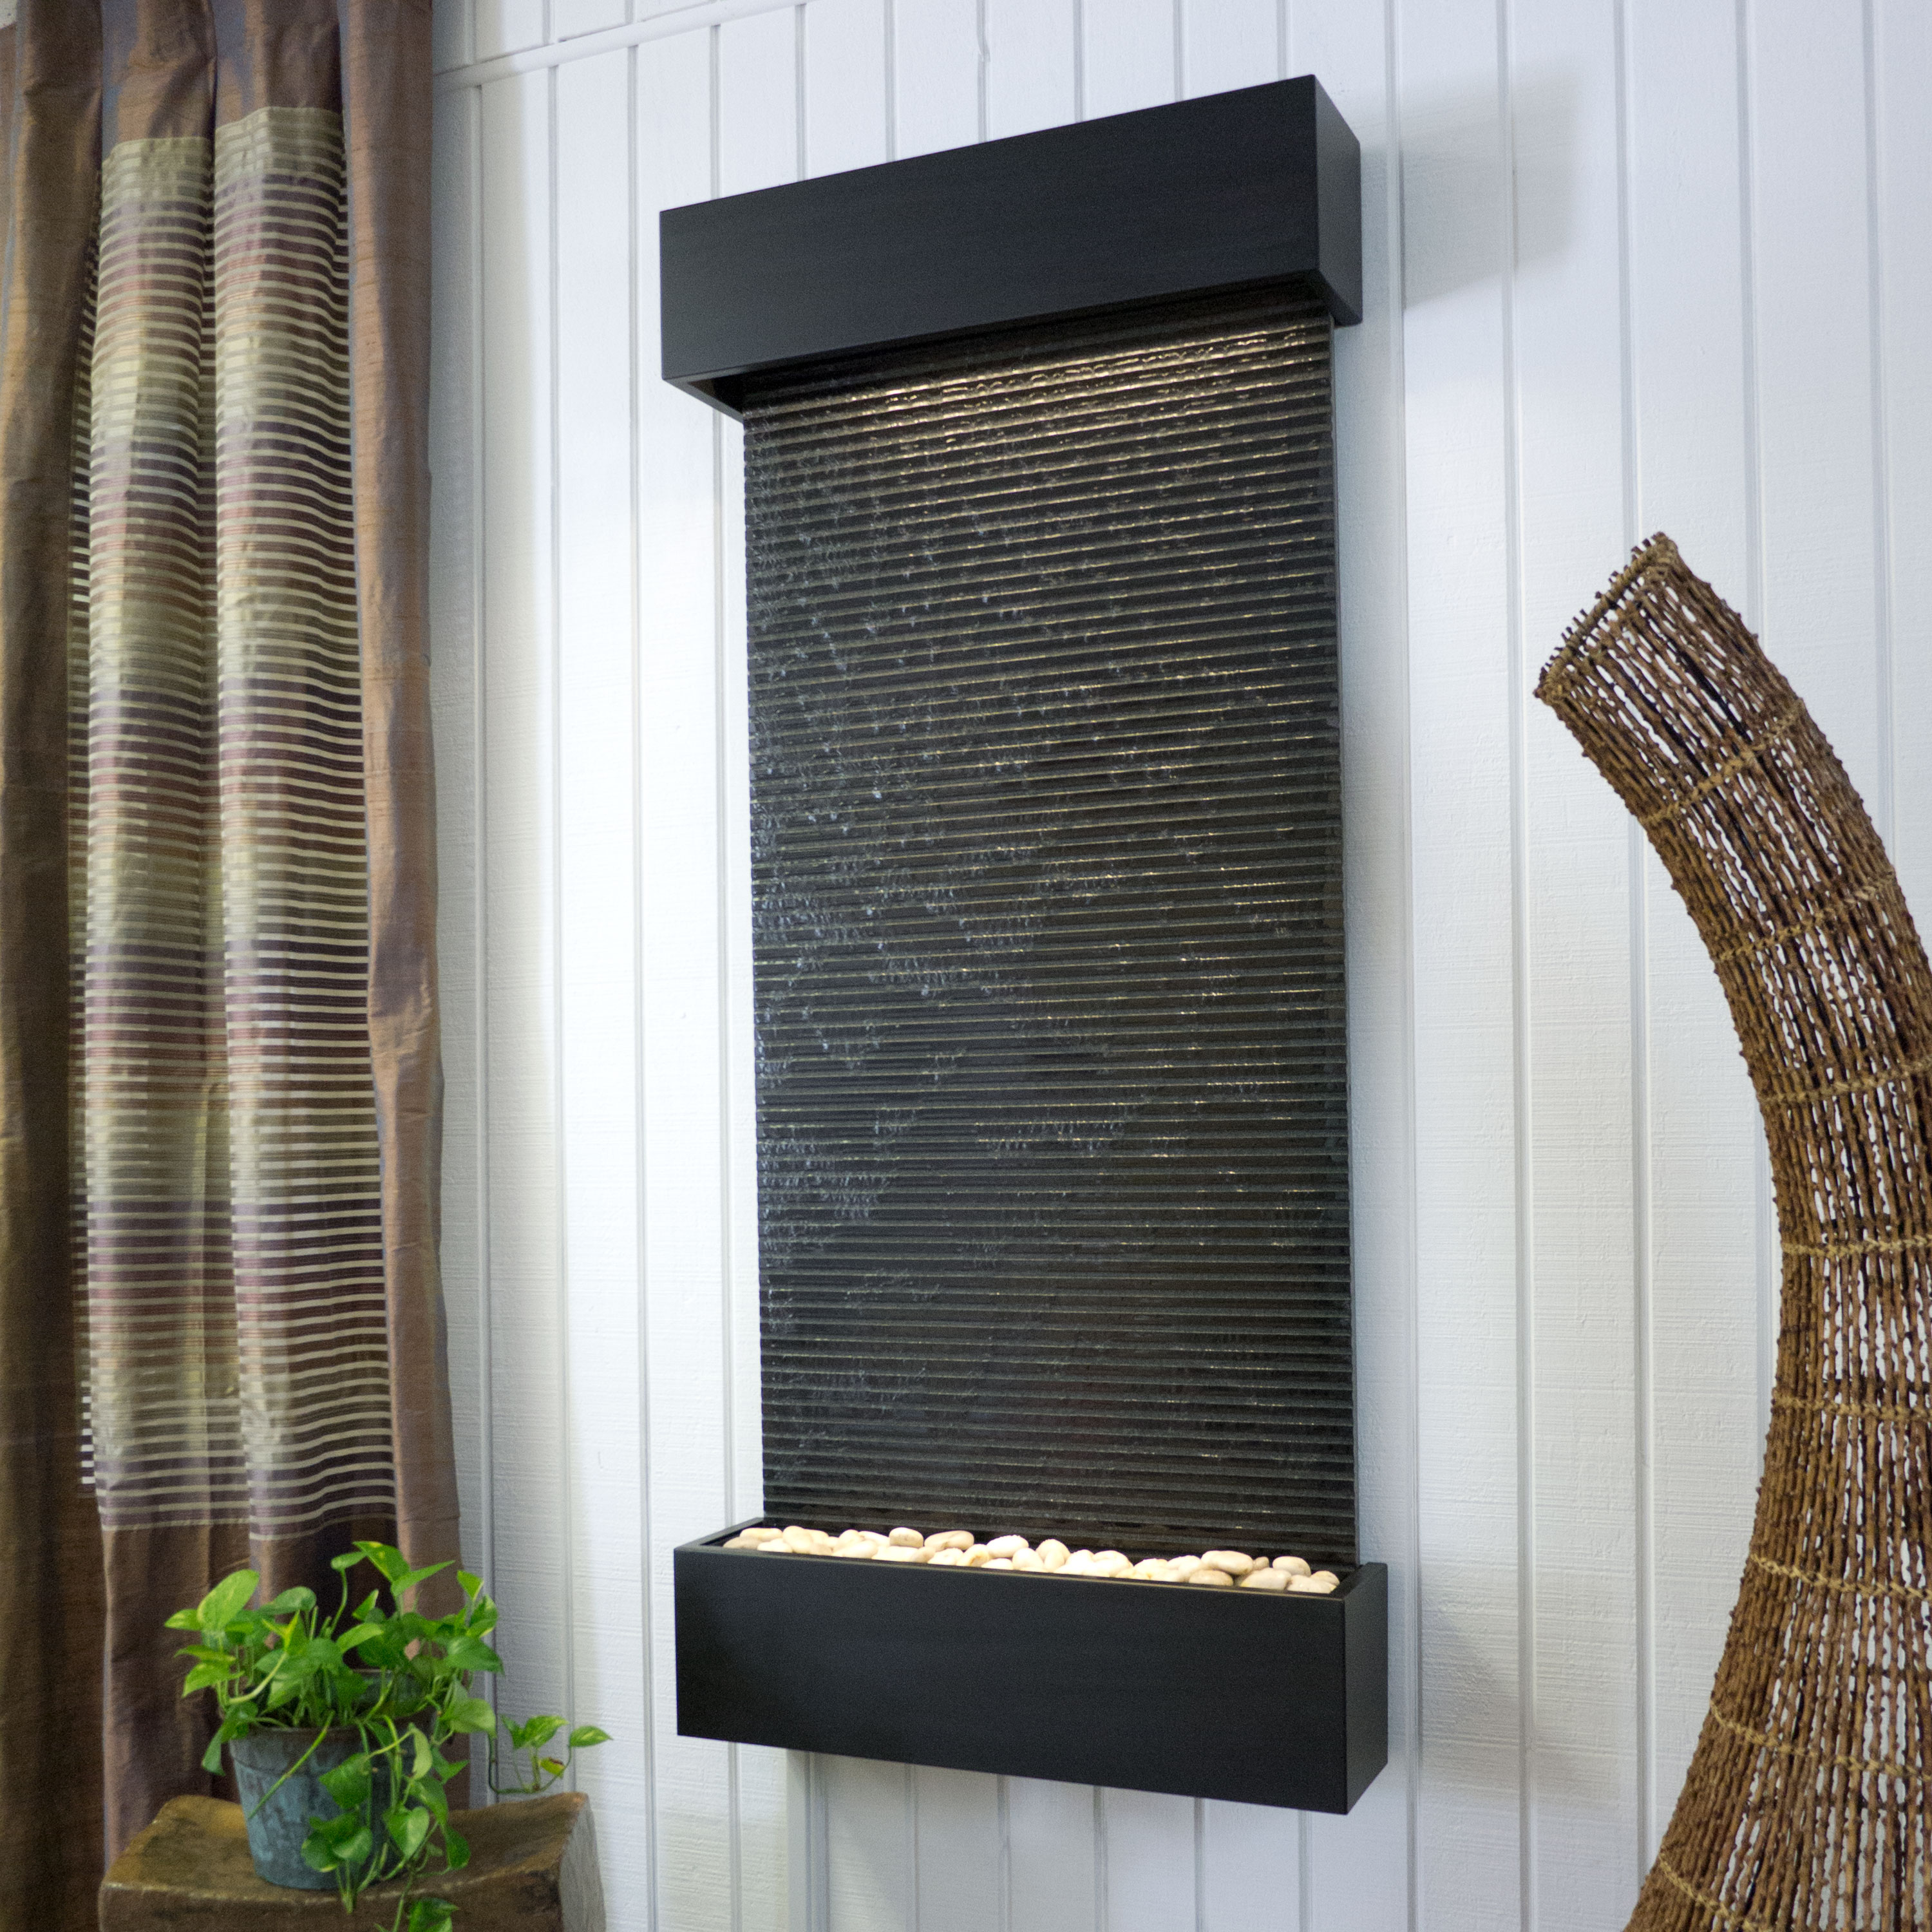 How To Integrate Interior Wall Fountains In Your Home: Is A Wall Fountain Right For Your Waiting Room?